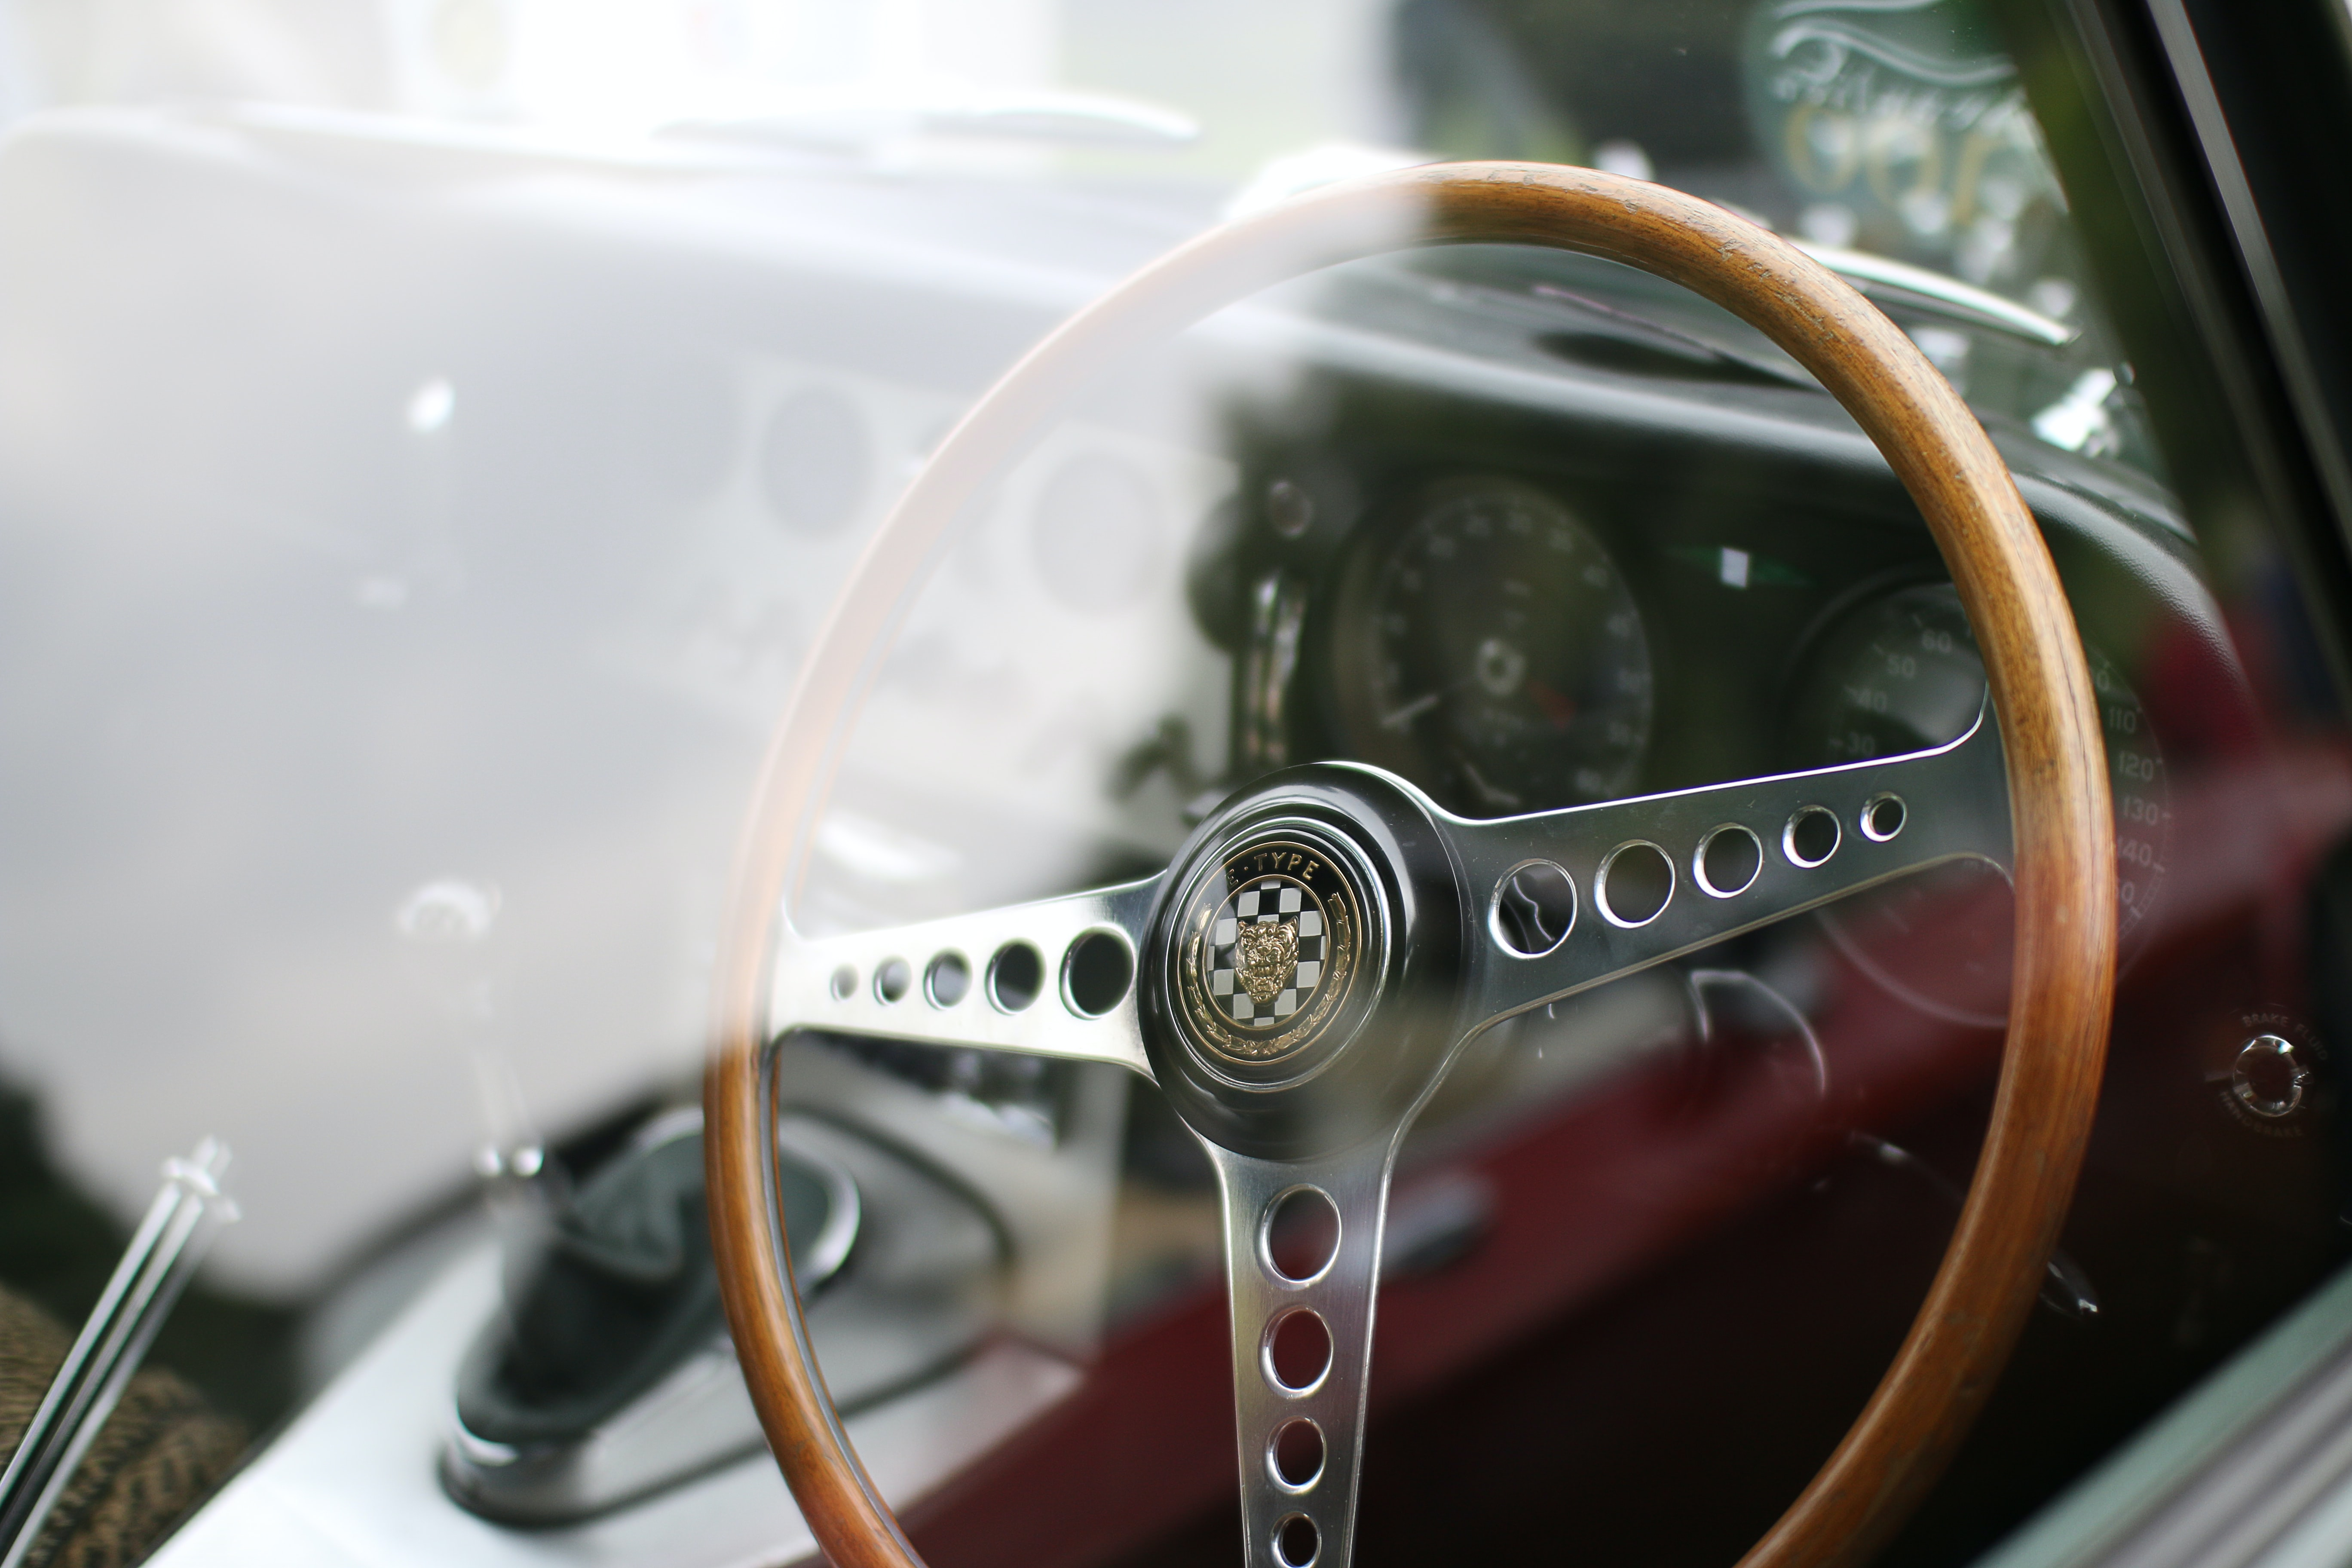 Interior of vintage car with wooden steering wheel from outside of window with reflection, Windsor